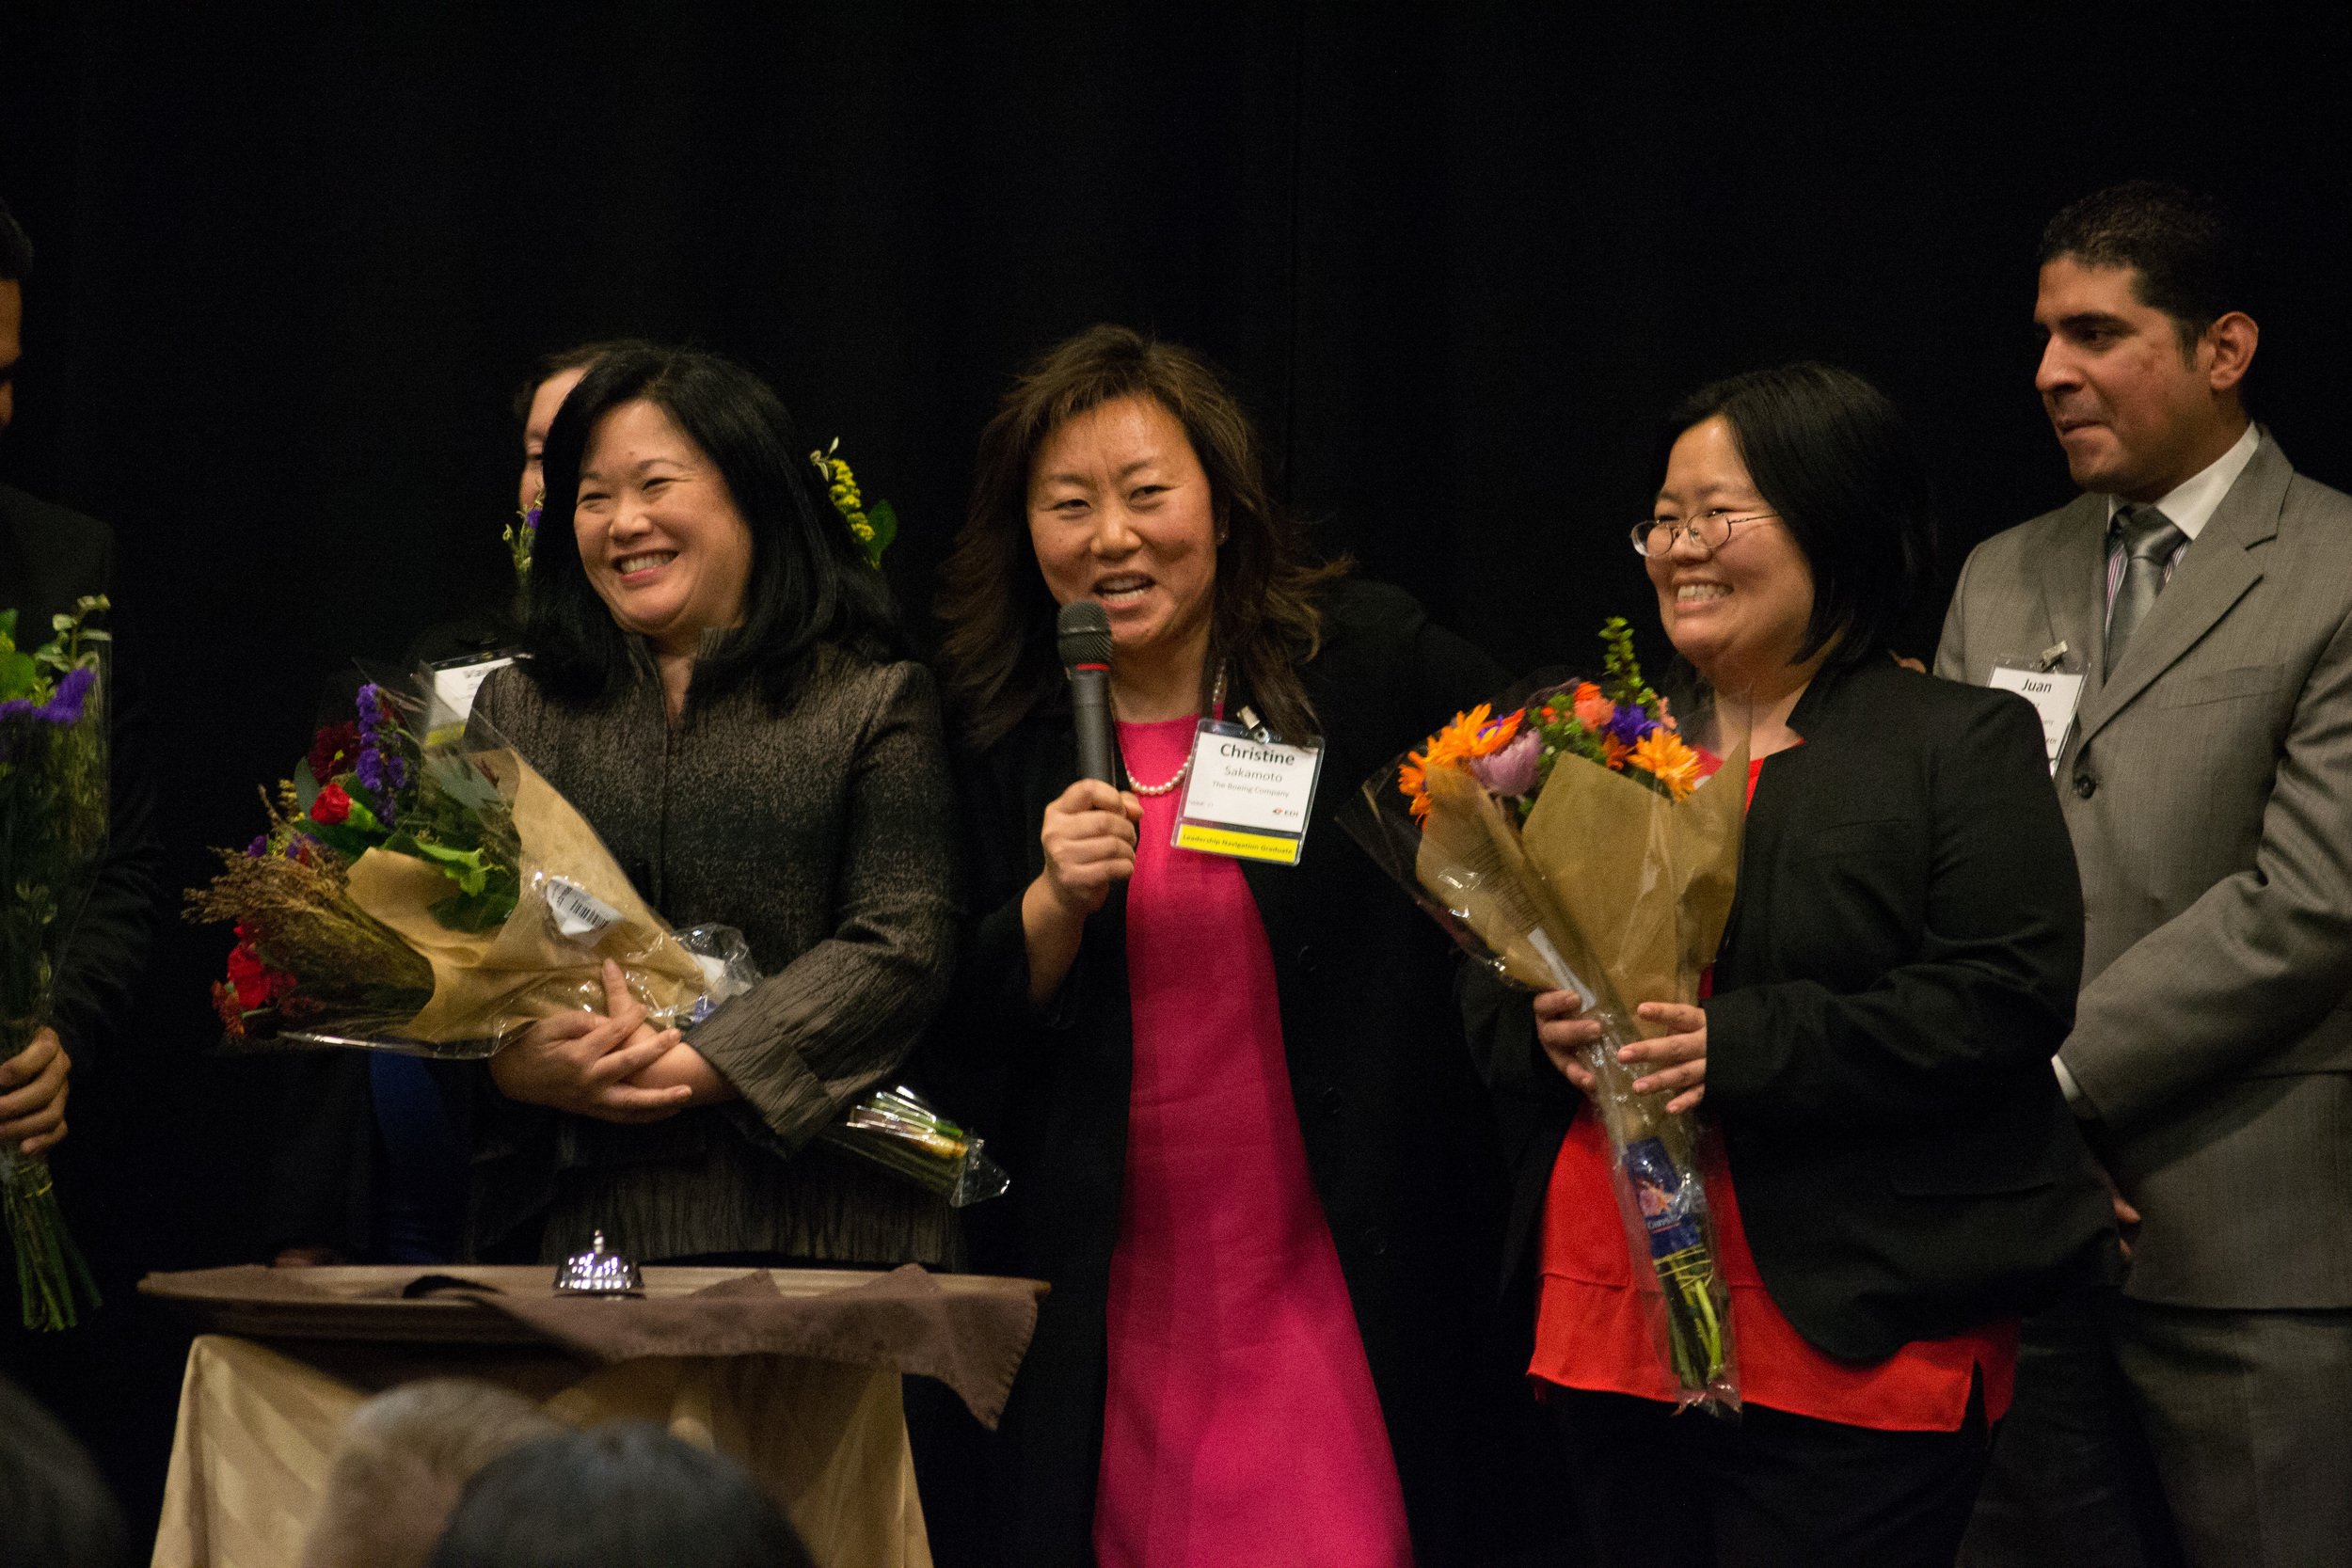 Above : 2015 Navigation graduate,  Christine Sakamoto  (middle) presents flowers on behalf of her class to Navigation Program Director,  Colleen Yamaguchi  (left) and EDI's Executive Director,  Marci Nakano  (right).